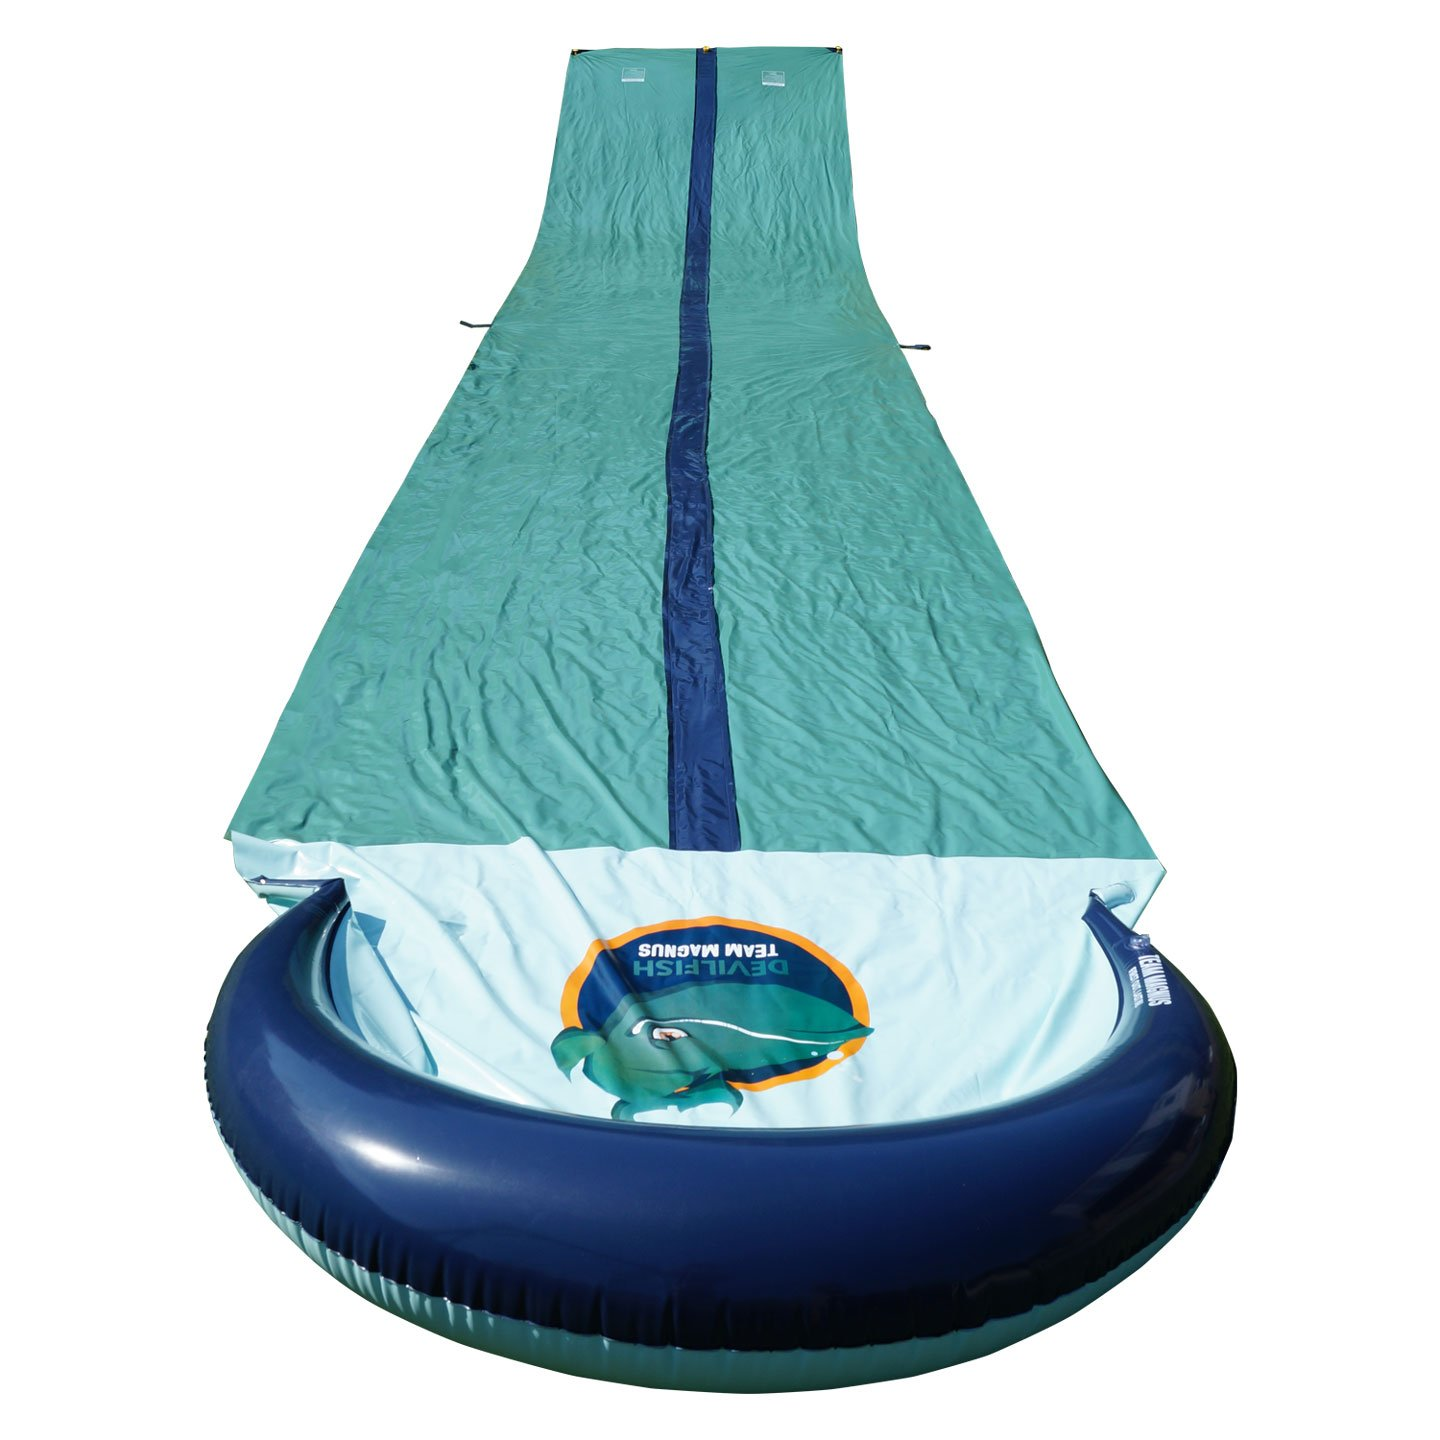 TEAM MAGNUS Water Slide for Garden Play: 31 Foot Slip and Slide for Races with Heavy-Duty Inflatable Crash pad by TEAM MAGNUS